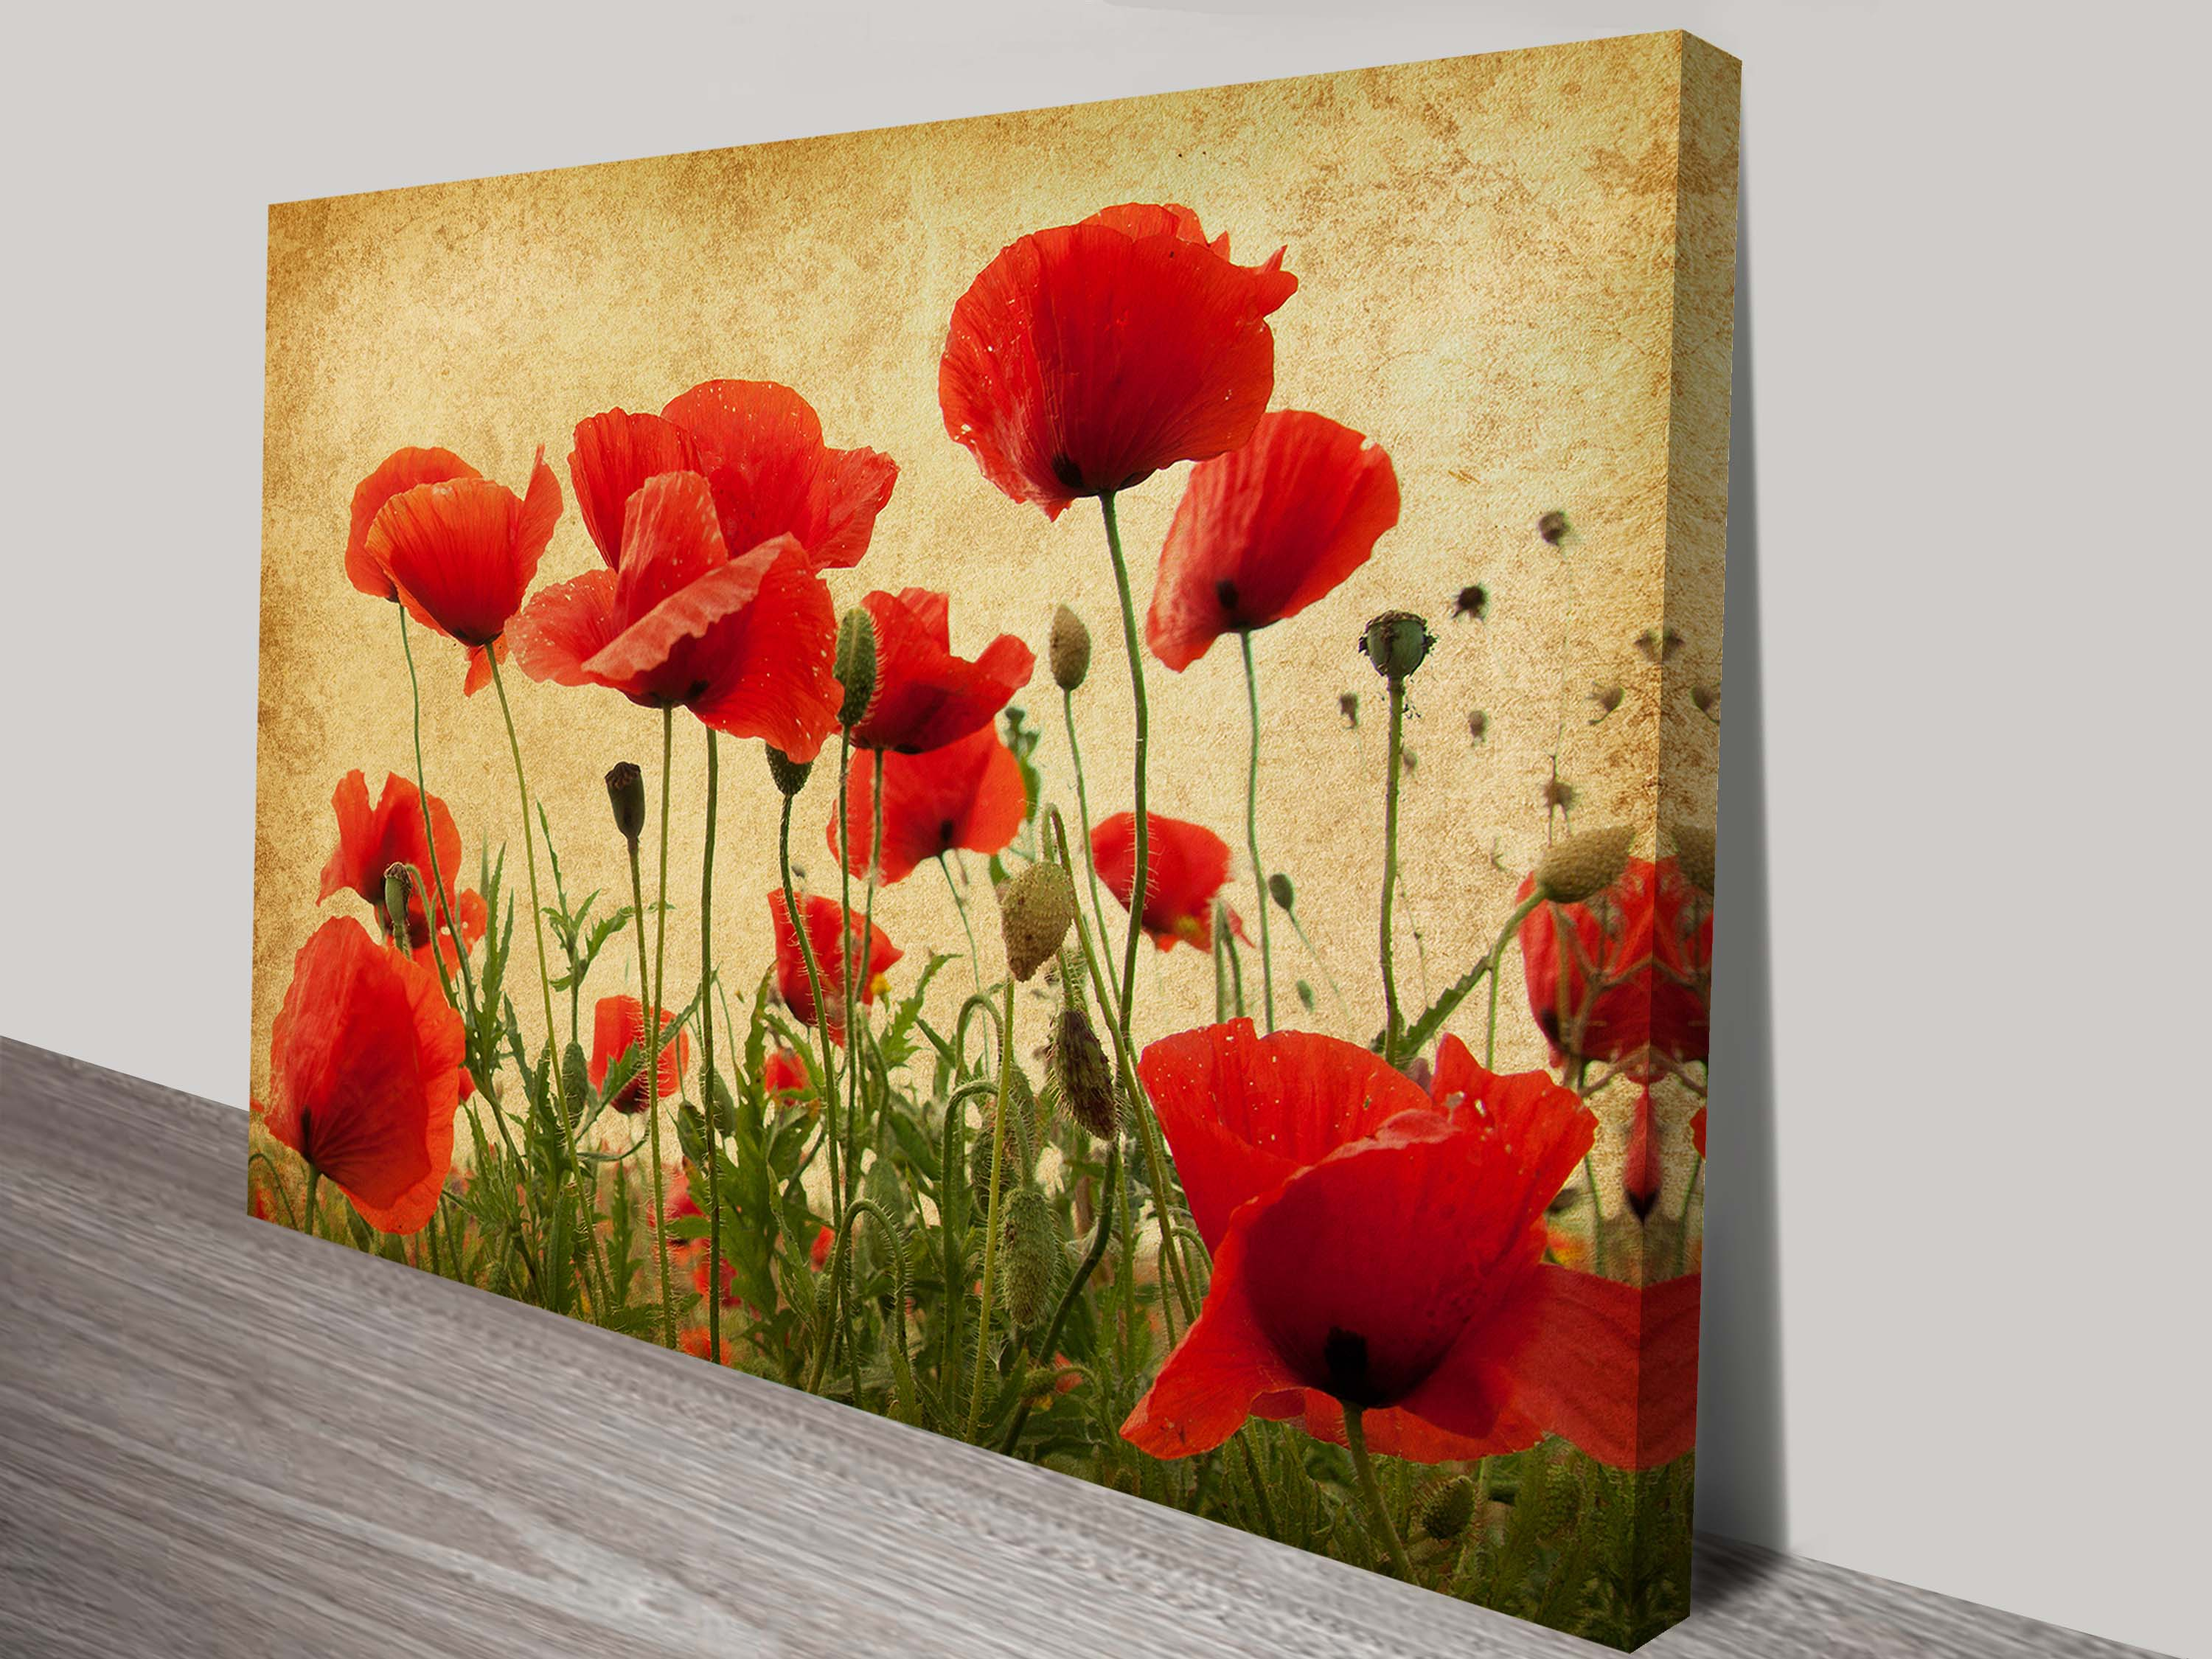 Vintage Floral Art on Canvas Prints of Poppies Flower Art | Poppy ...